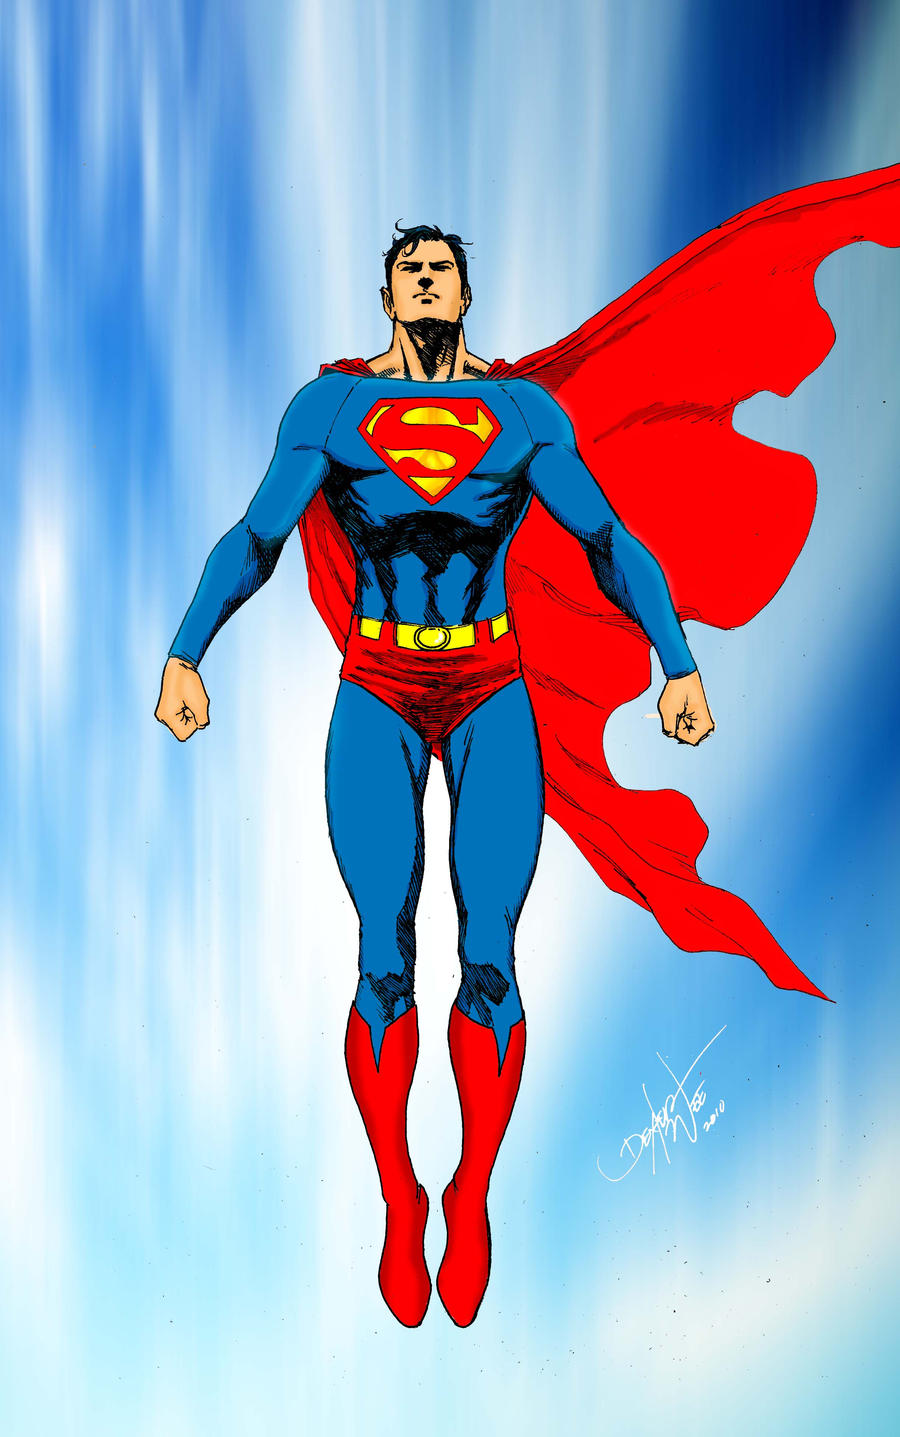 cute superman flying drawing - photo #24